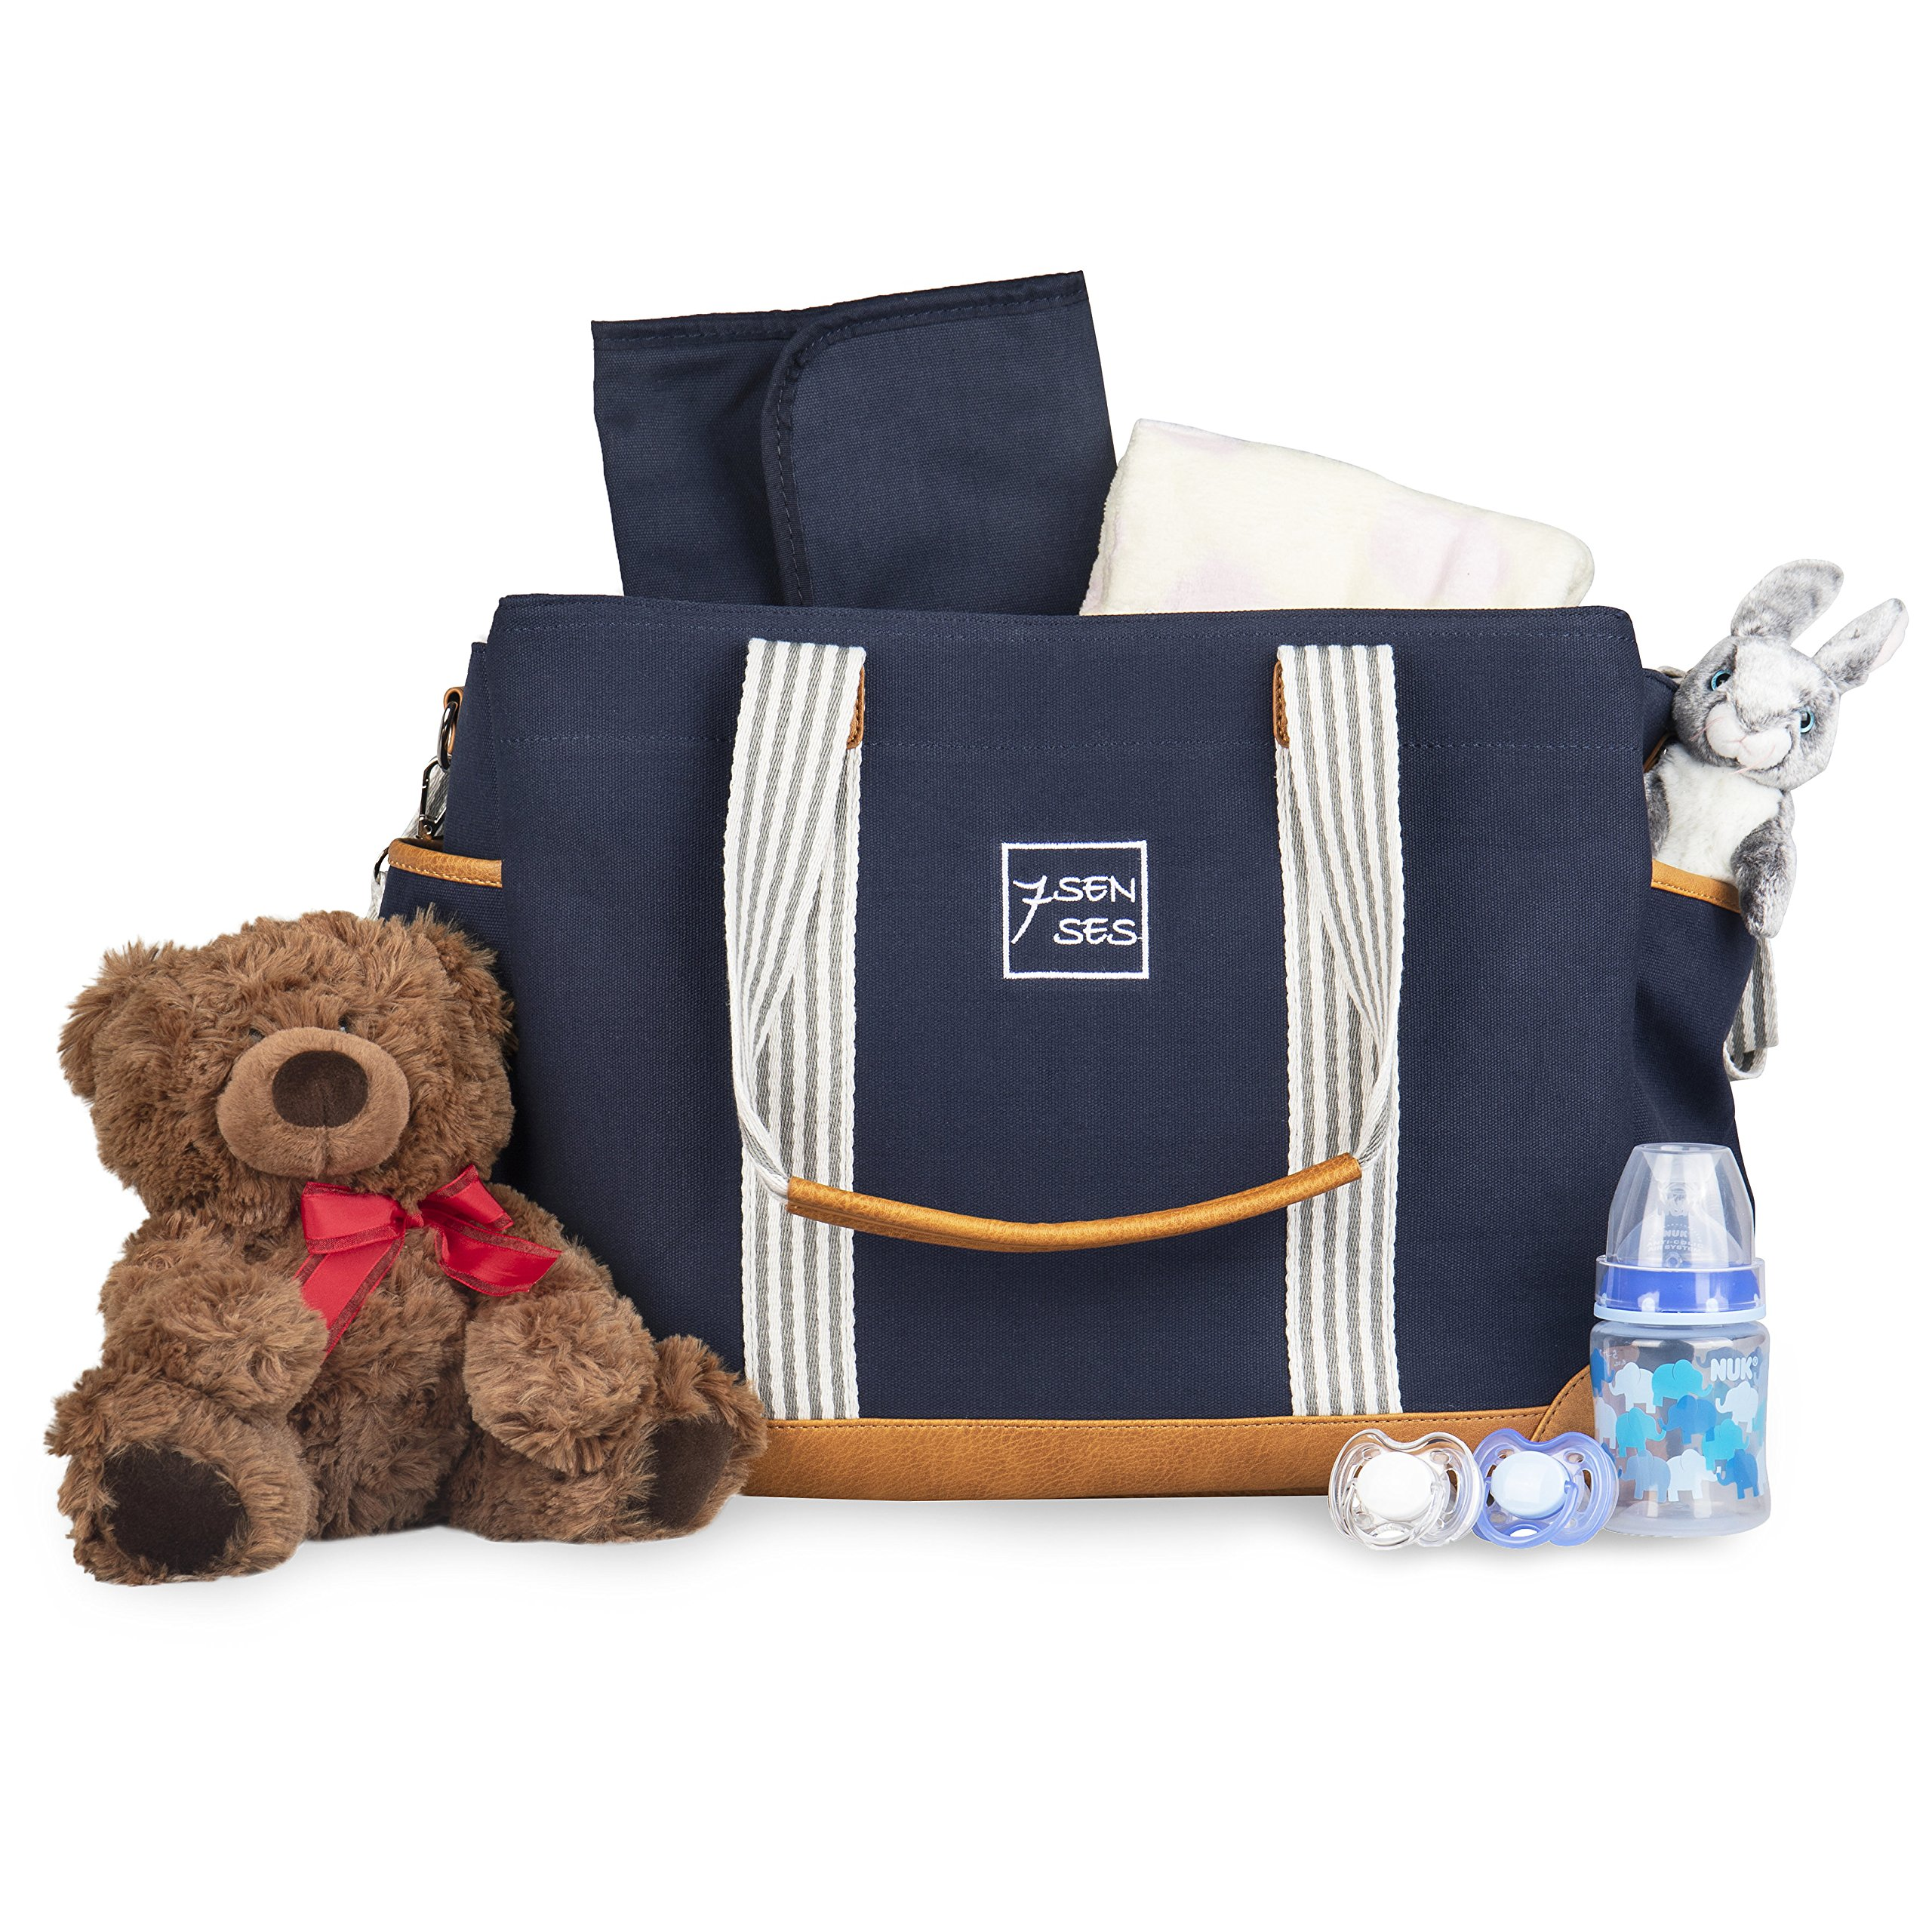 Diaper Bag for Girls and Boys - Large Capacity Baby Bag - Nappy Bag - Diaper Tote - Plus Changing Pad, Stroller Straps and 10 Pockets - Best Baby Shower Gift by 7Senses (Navy Blue) by 7Senses